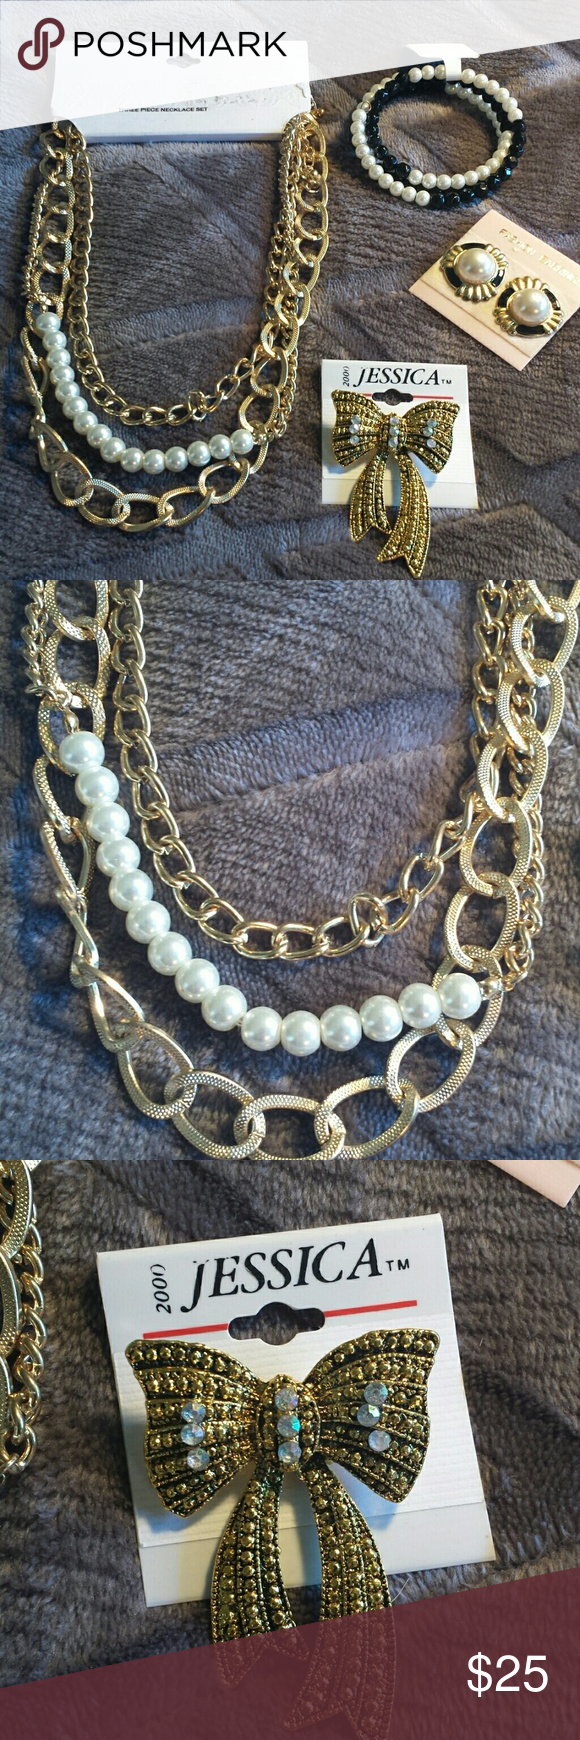 NWT Faux Gold and Pearl Jewelry Set Boutique Wraparound Pearl